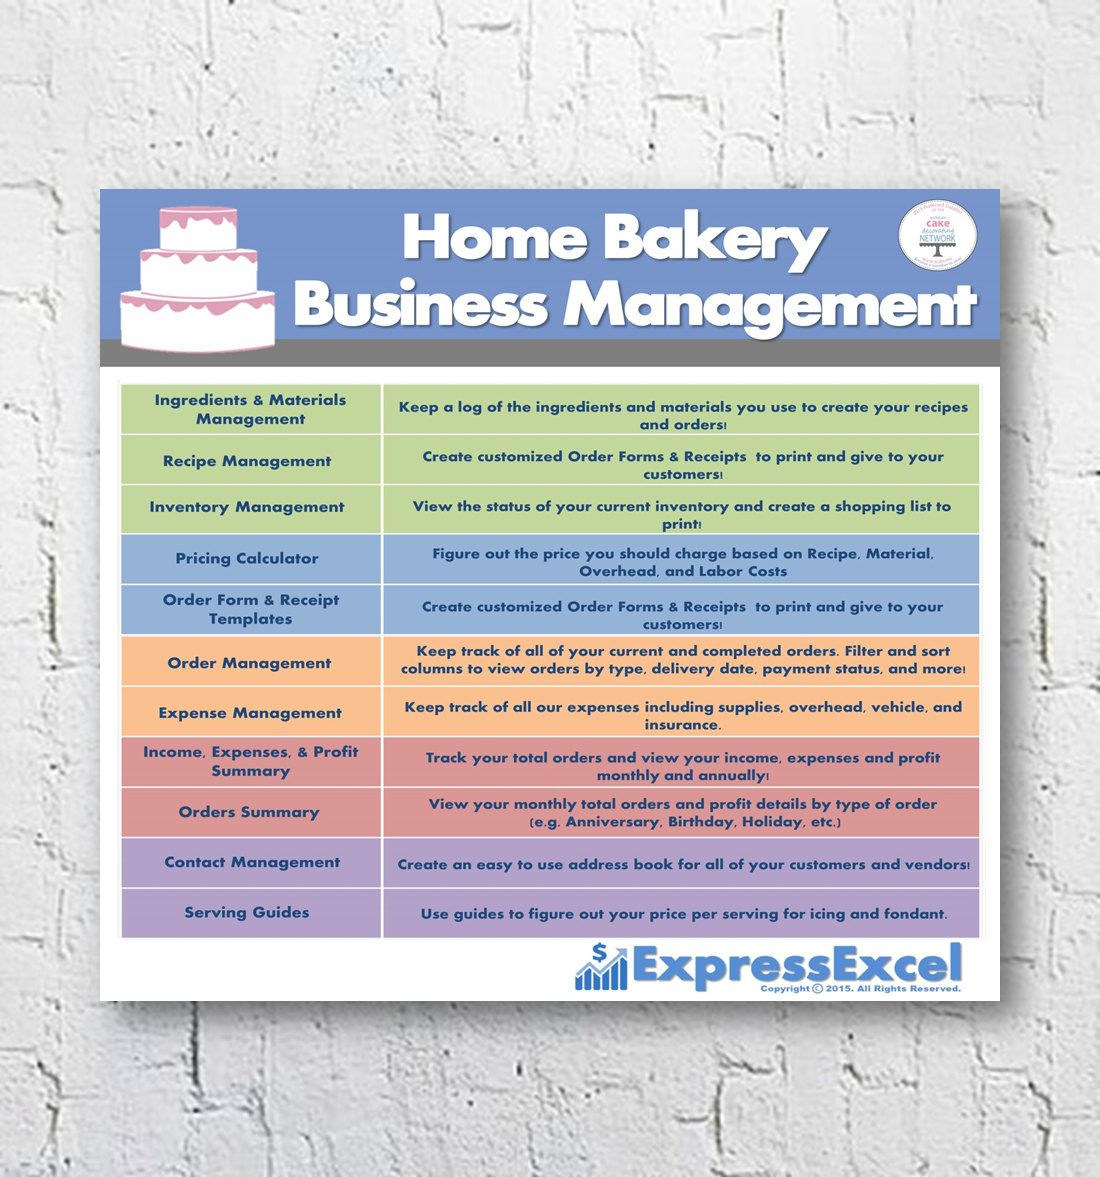 expressexcelwins Cake Decorating Home Bakery Business